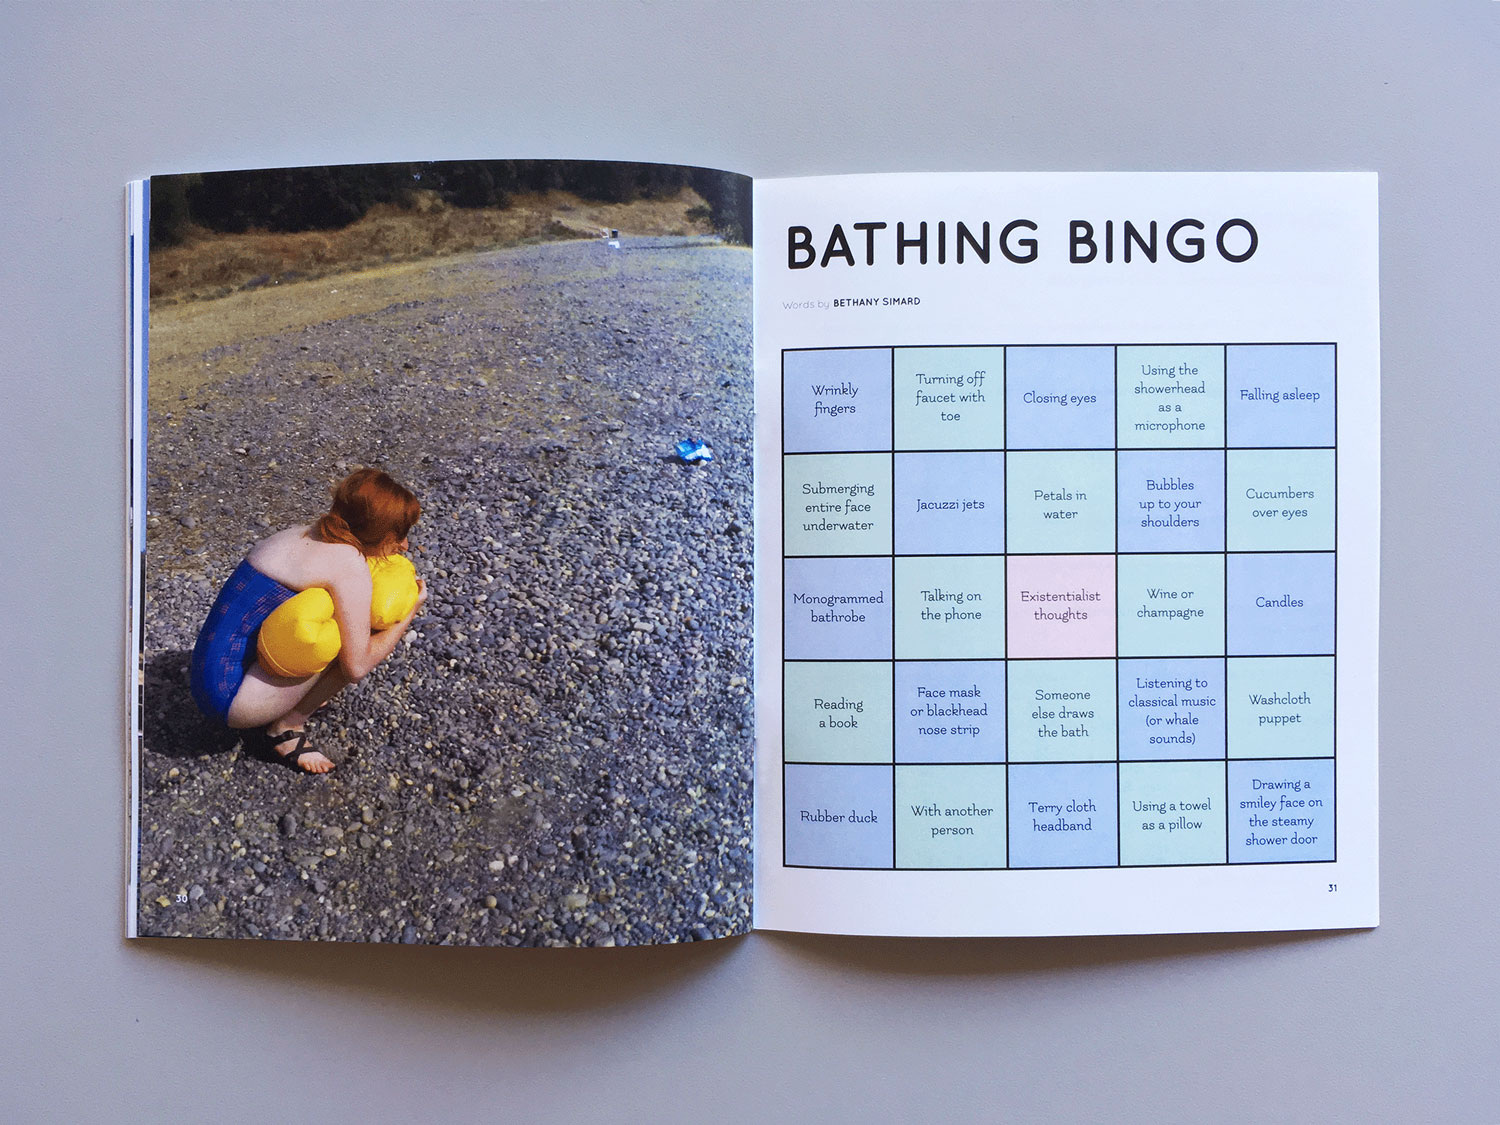 Interior spread of a section called BATHING BINGO: on the right is a woman in a bathing suit, decompressing a flotation device